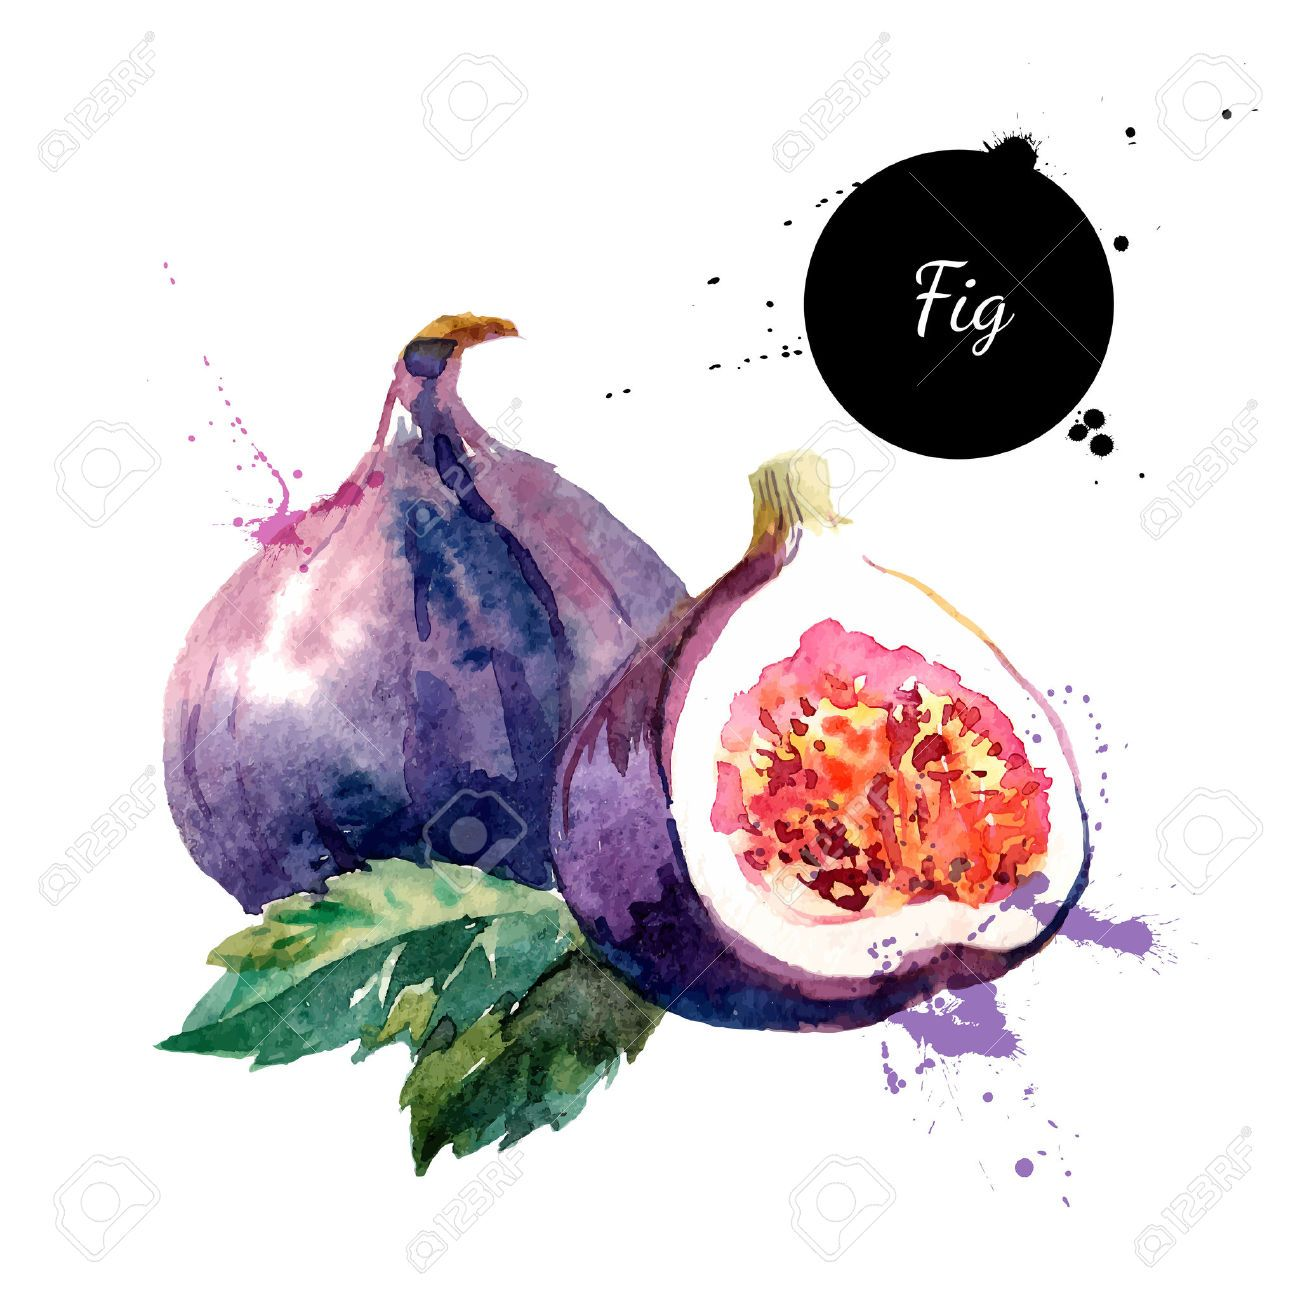 Free illustration watercolor pigment color free image - Watercolor Images Stock Pictures Royalty Free Watercolor Photos